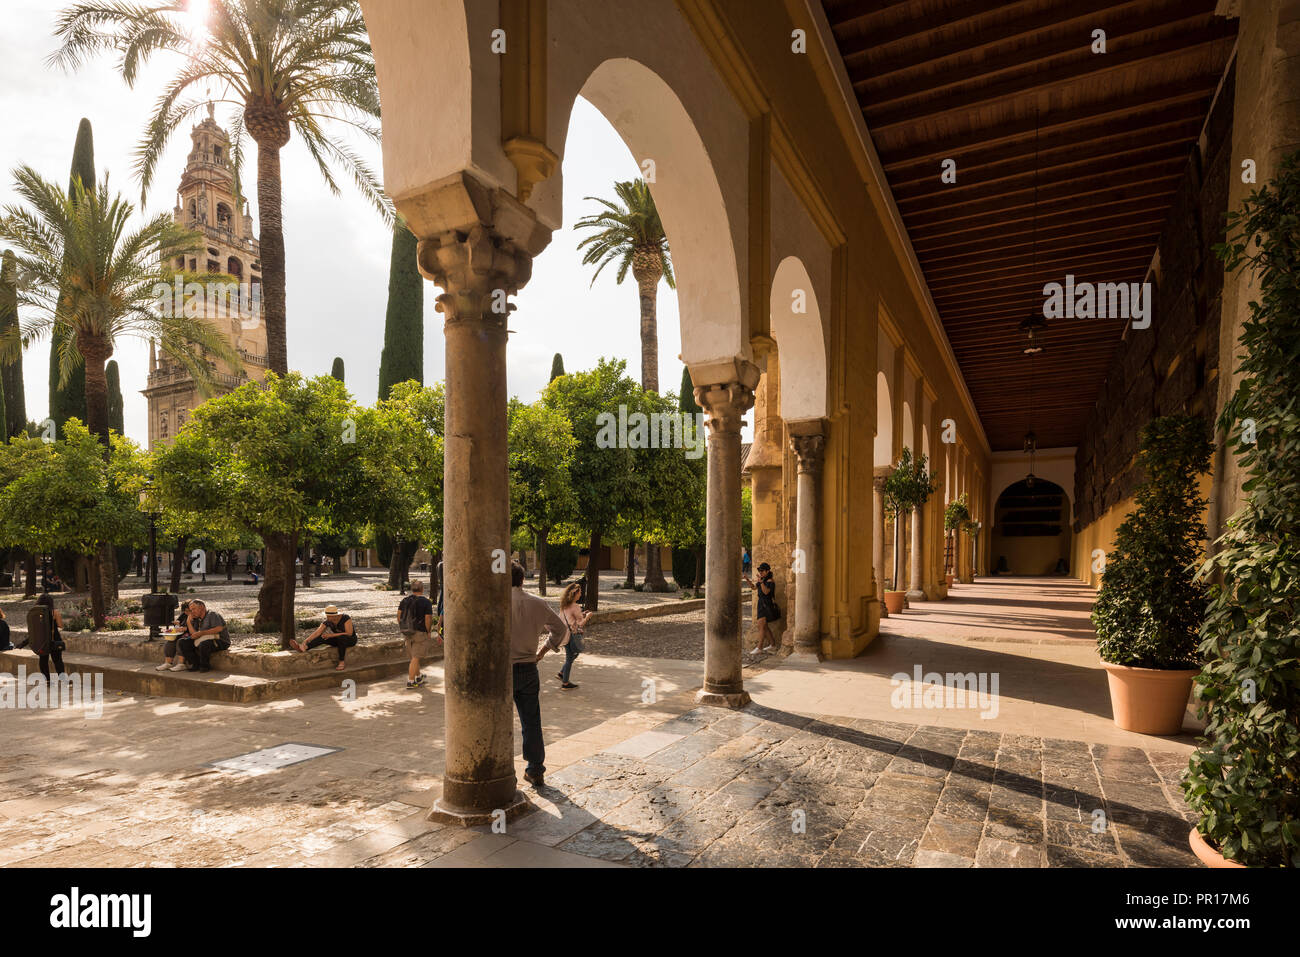 The Great Mosque (Cathedral of Our Lady of the Assumption) (Mezquita) of Cordoba, UNESCO World Heritage Site, Cordoba, Andalucia, Spain, Europe - Stock Image